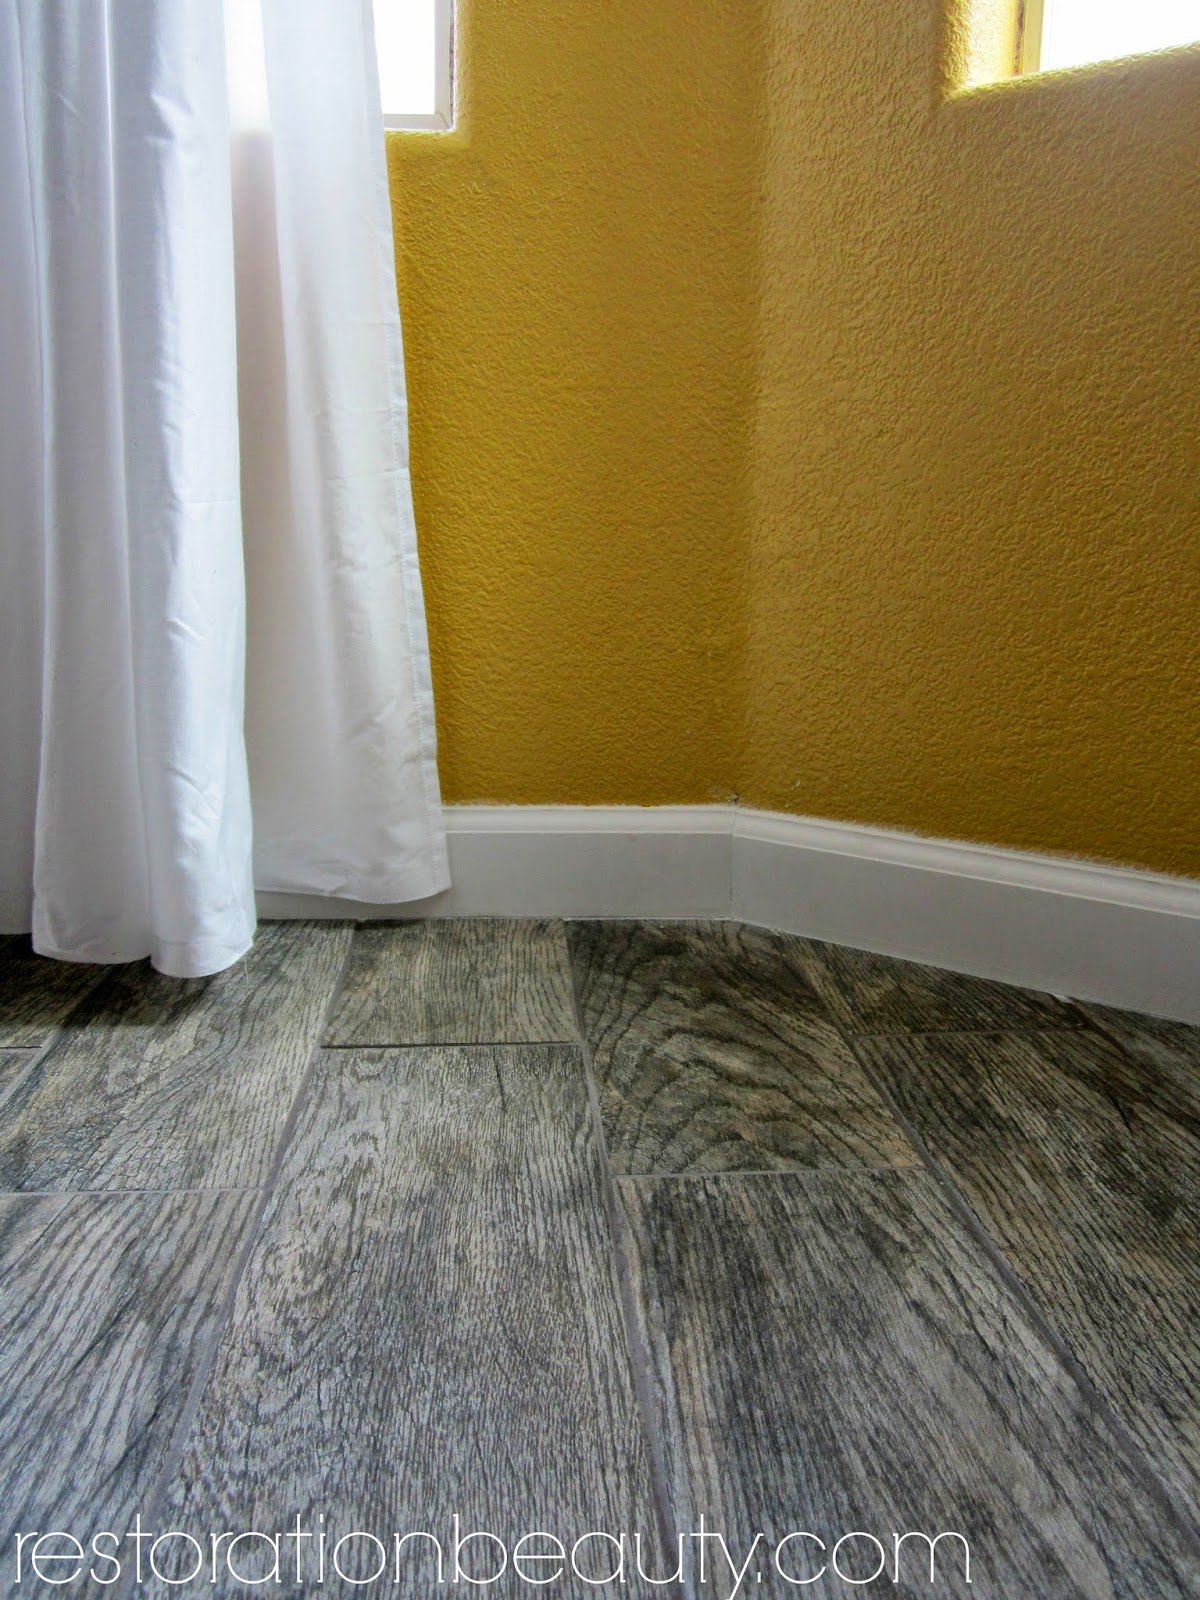 Restoration beauty faux wood tile flooring in the kitchen dailygadgetfo Choice Image